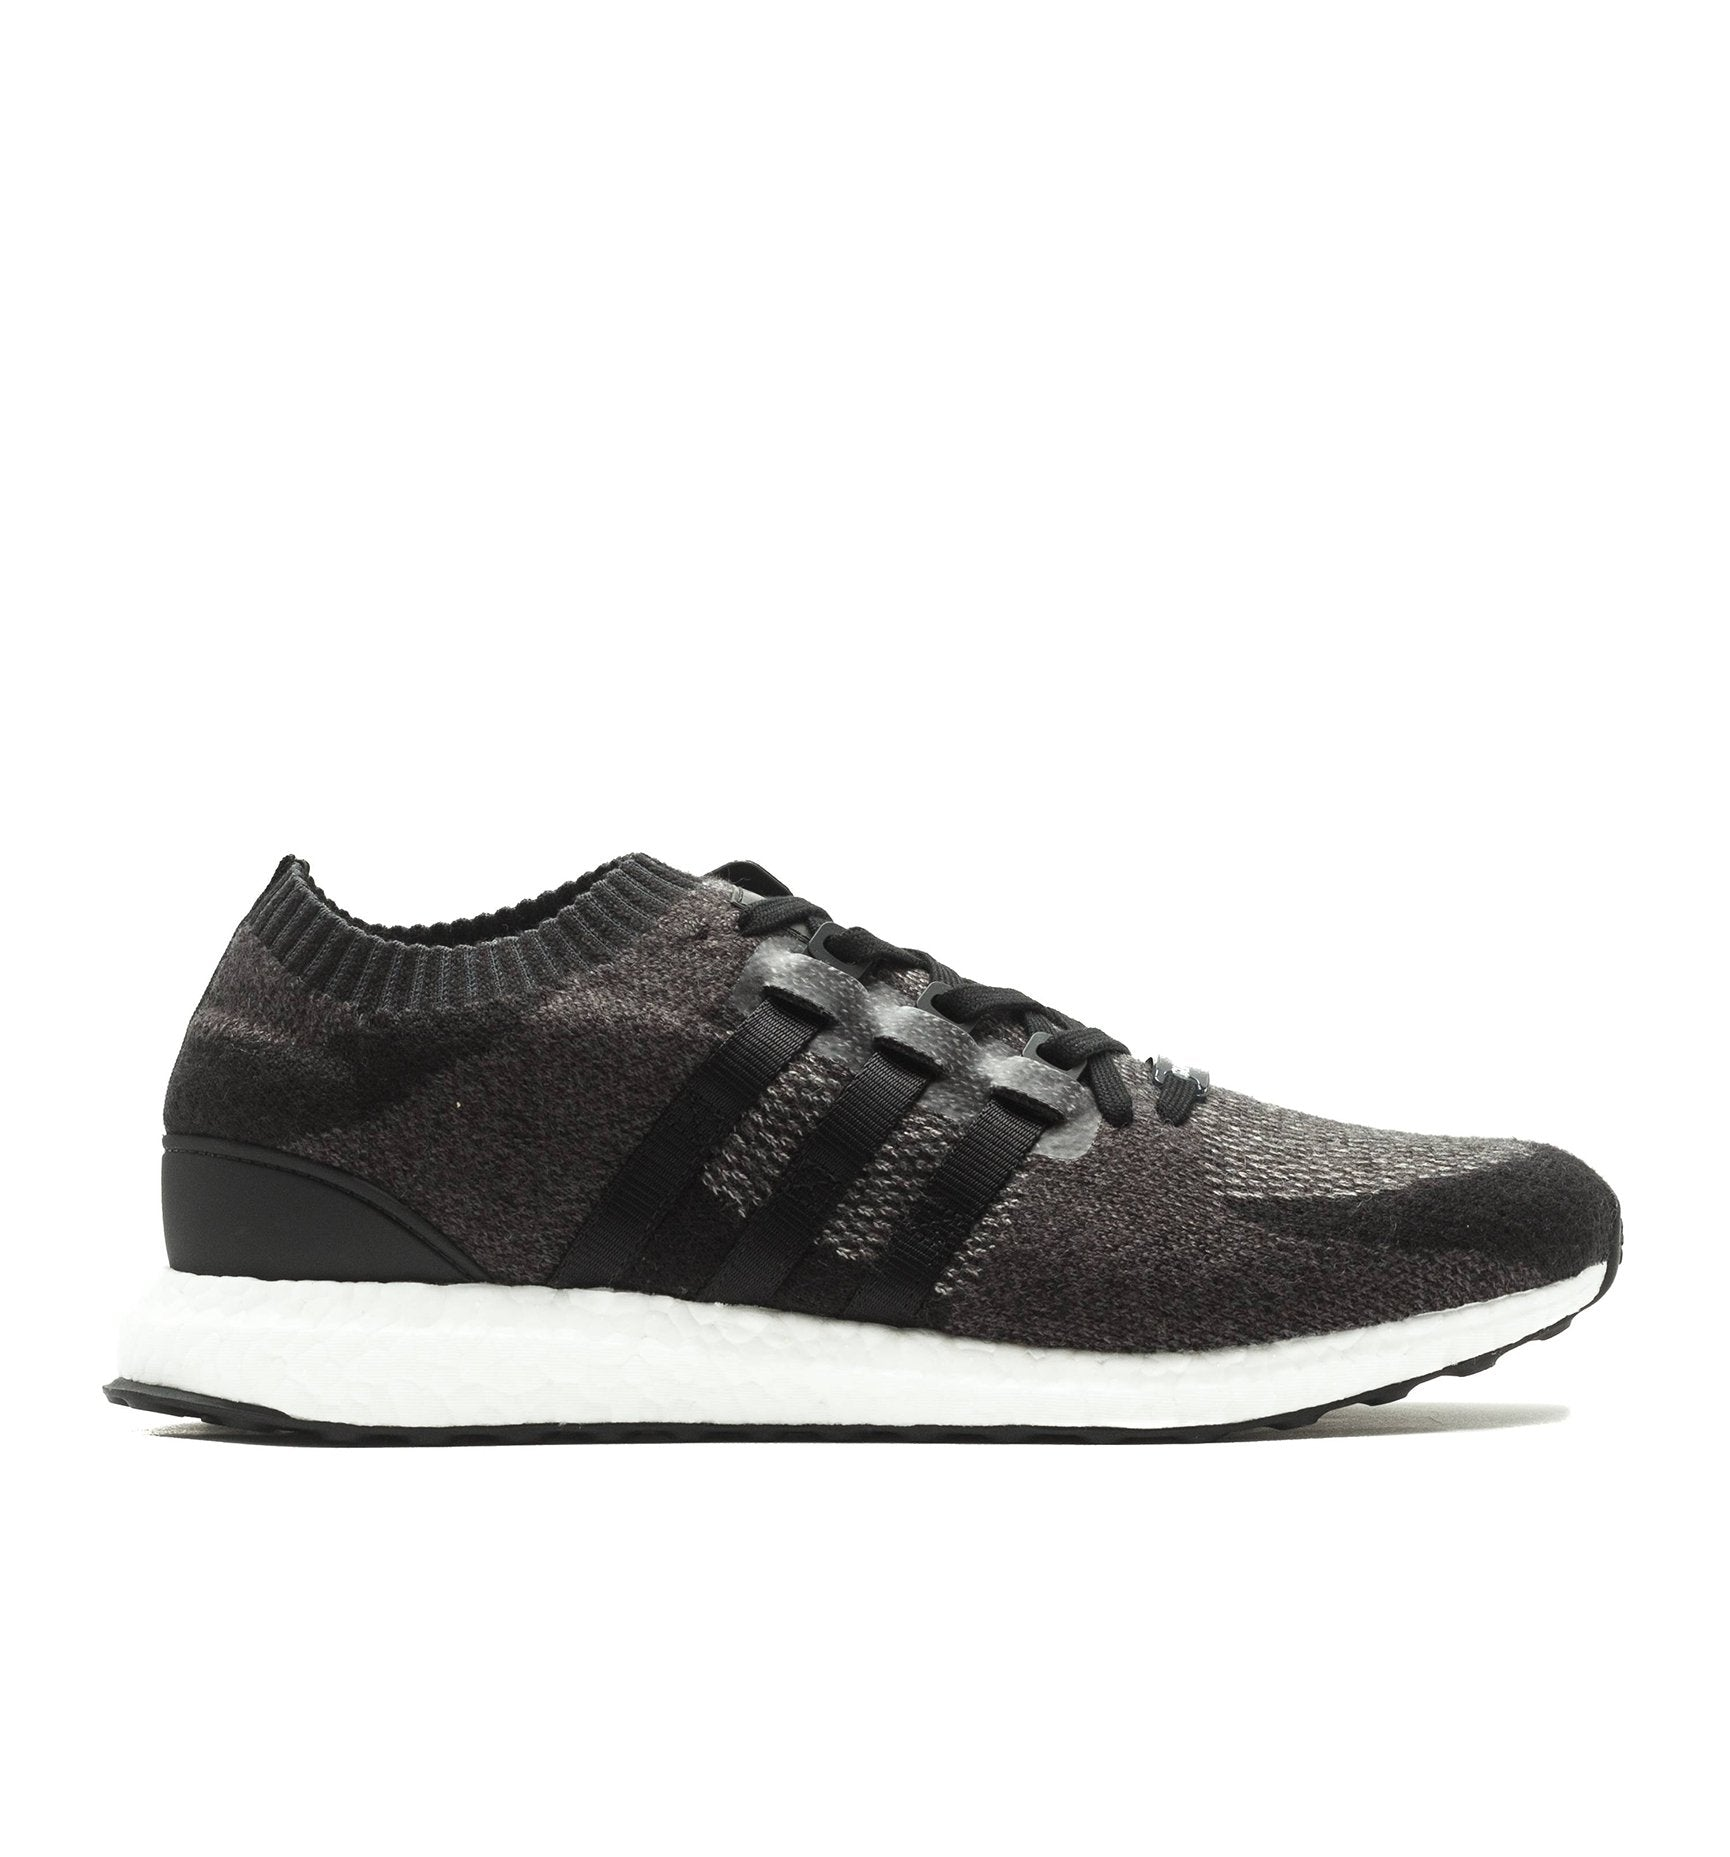 adidas EQT Support Ultra PK - Core Black